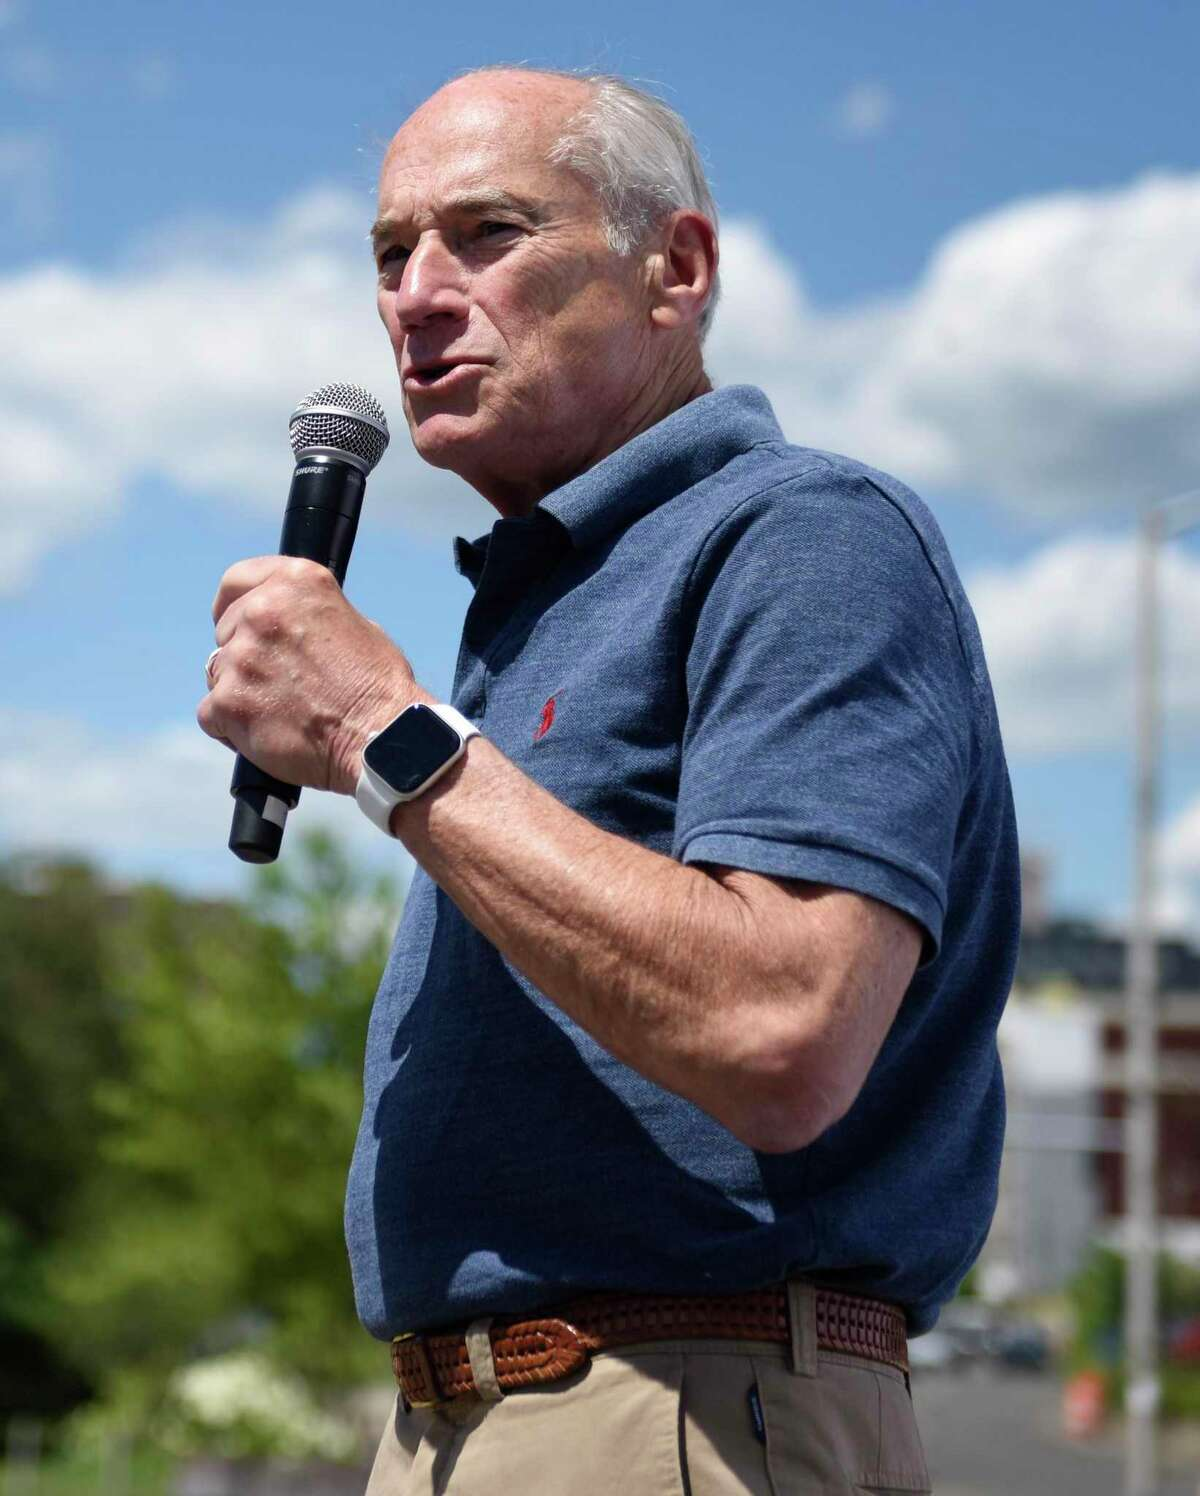 Mill River Park Collaborative Chairman Arthur Selkowitz speaks during the announcement of the Alive@Five and Wednesday Nite Live concert series performers at Mill River Park in Stamford, Conn. Wednesday, June 23, 2021. Morgan Stanley Presents Wednesday Nite Live kicks off September 1 with Blues Traveler while Alive@Five in Partnership with Reckson begins the following night, September 2, with a performance by Jon Batiste.